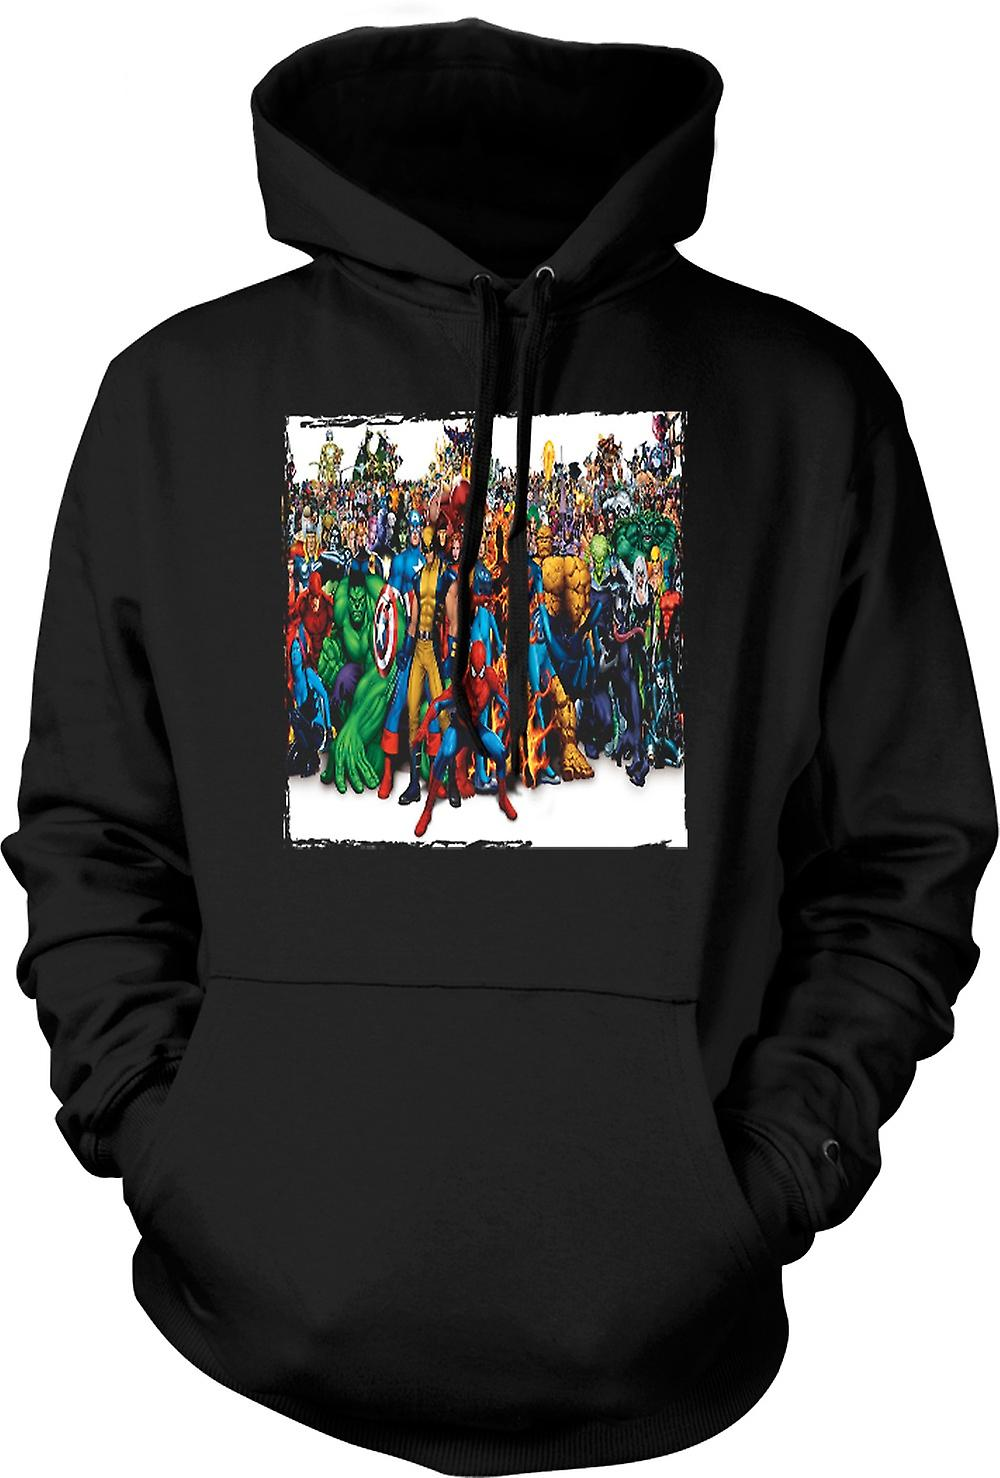 Mens Hoodie - Marvel Comic Groupe Hero - Portait